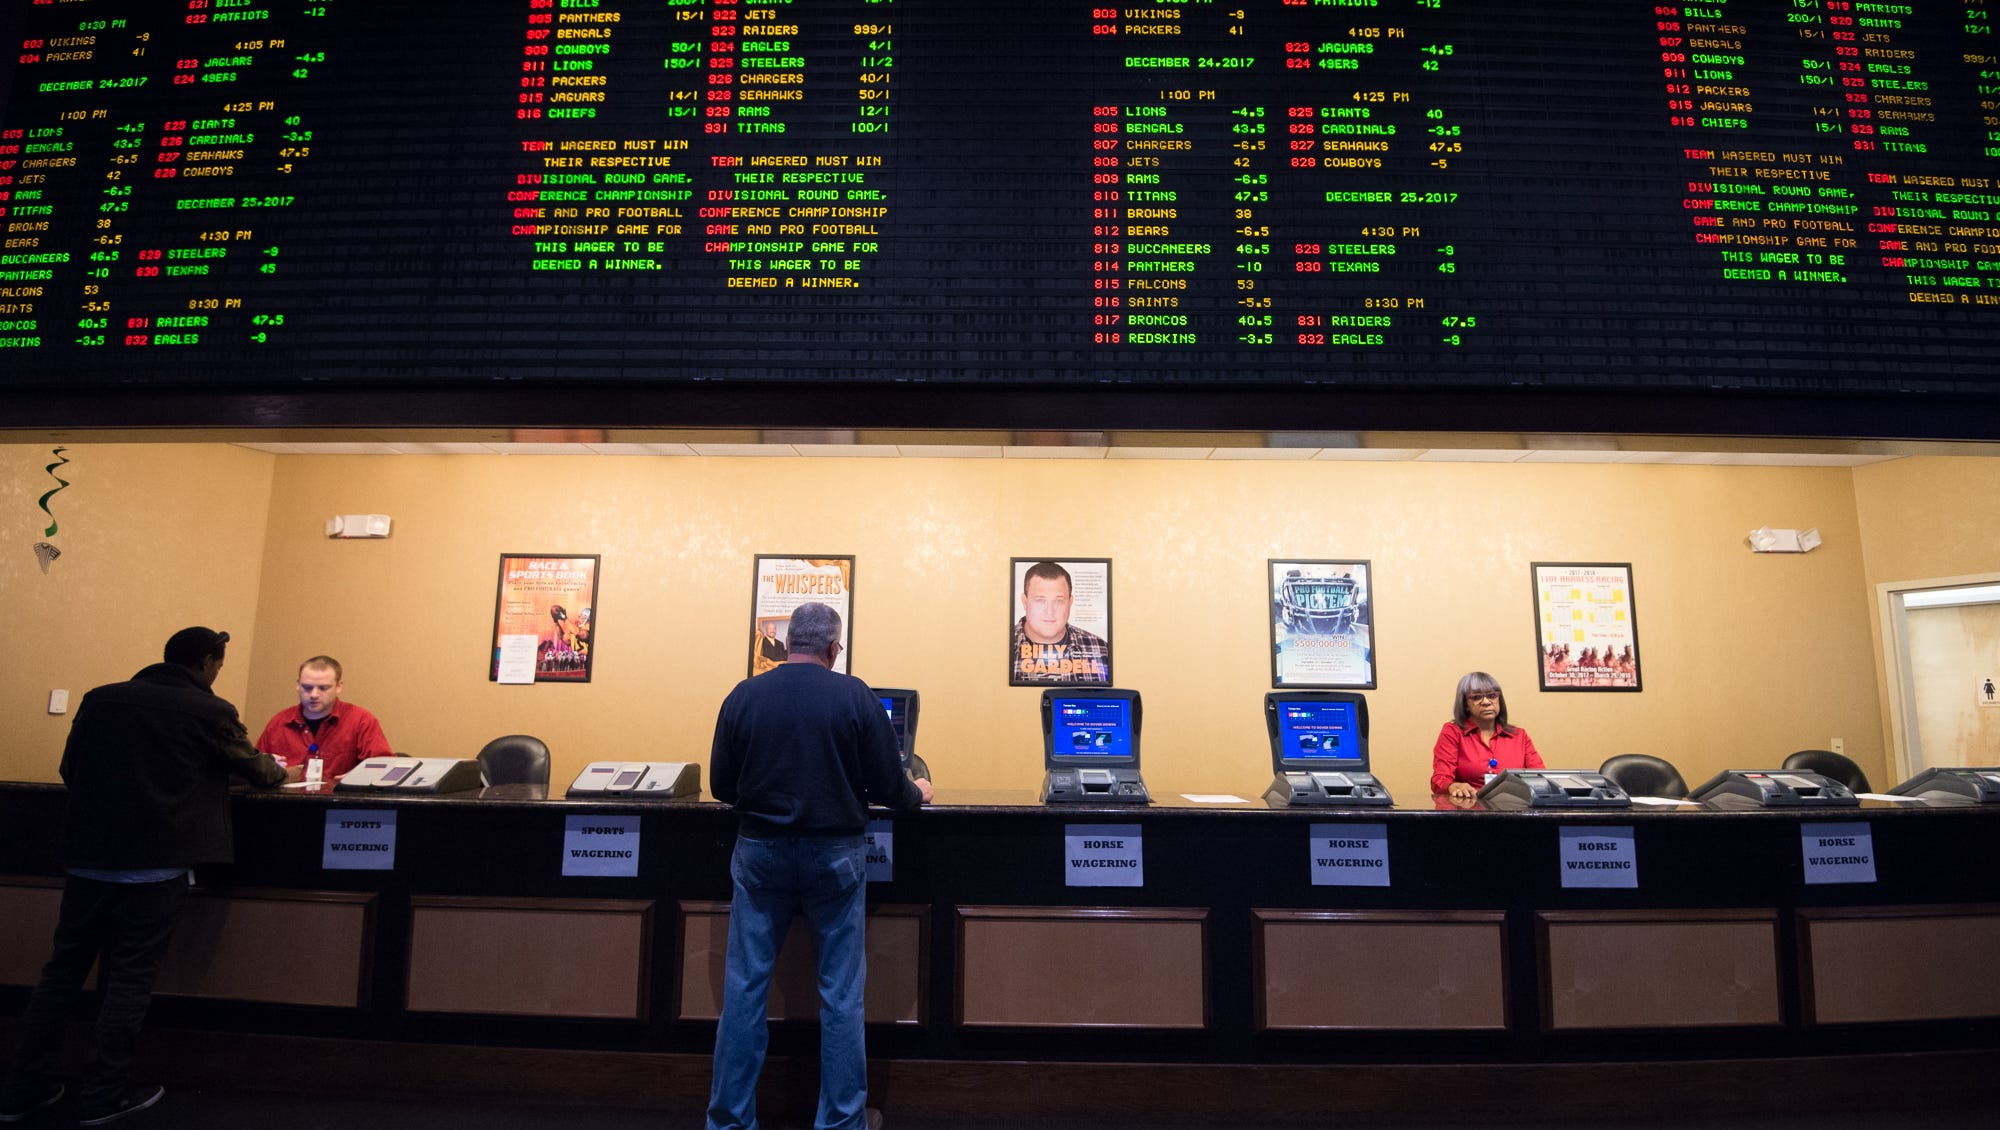 Legalized sports betting in delaware martingale betting system flaws and all lyrics